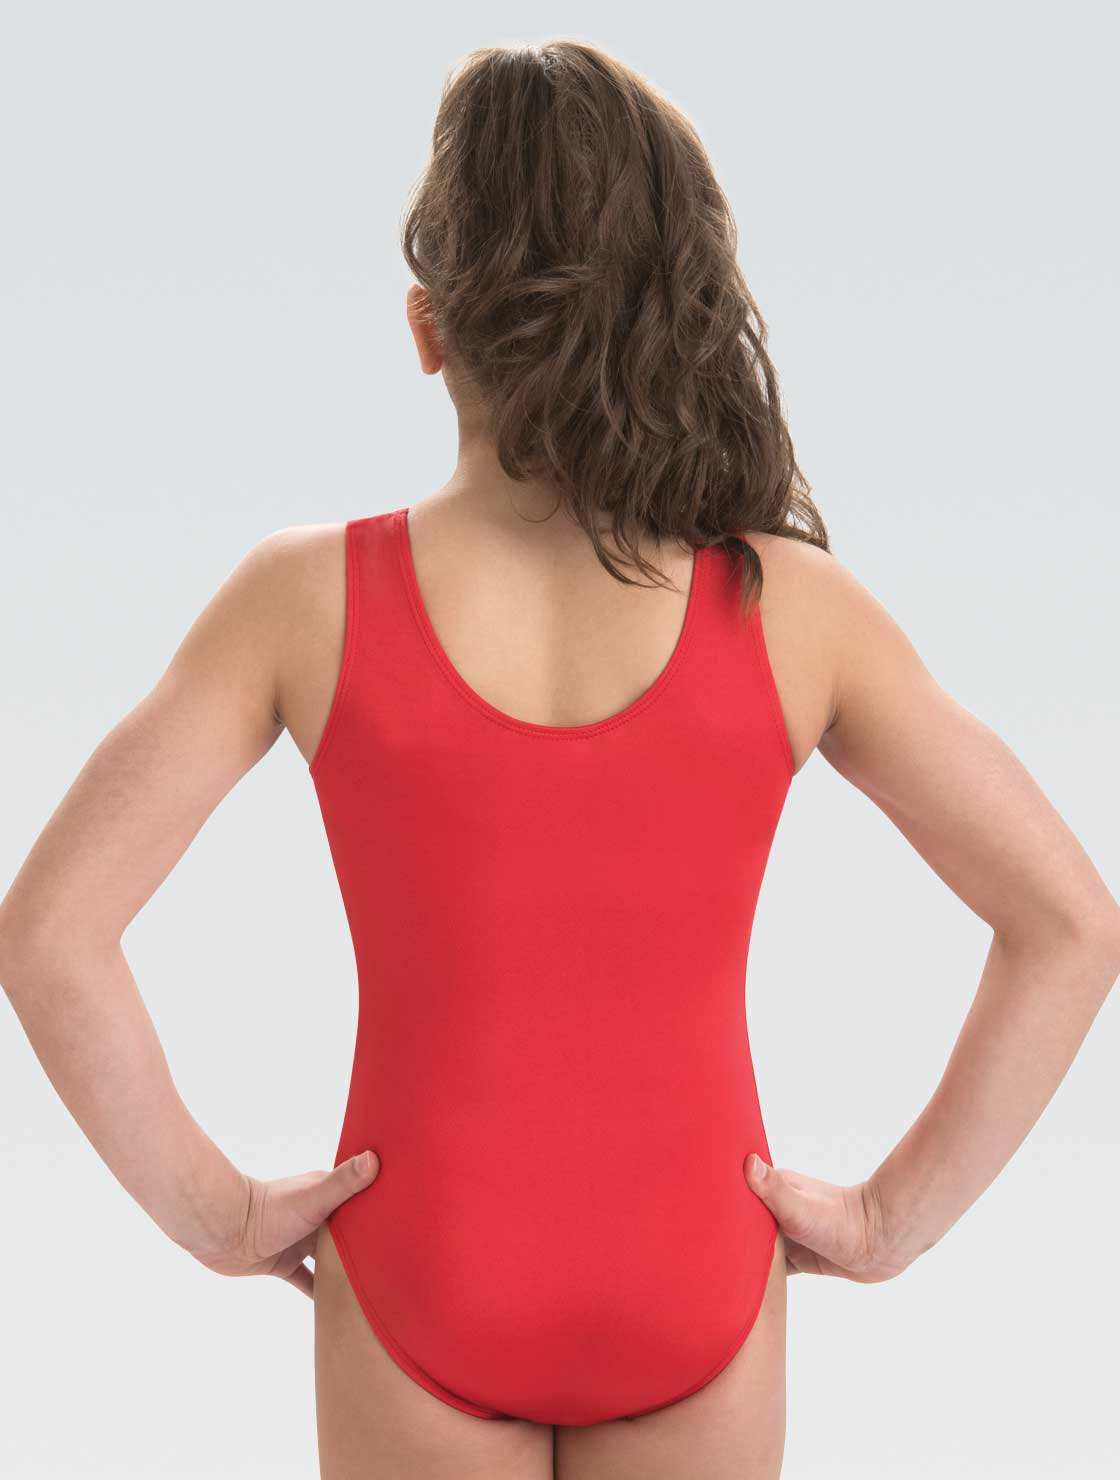 GK 2012 Red Leotard